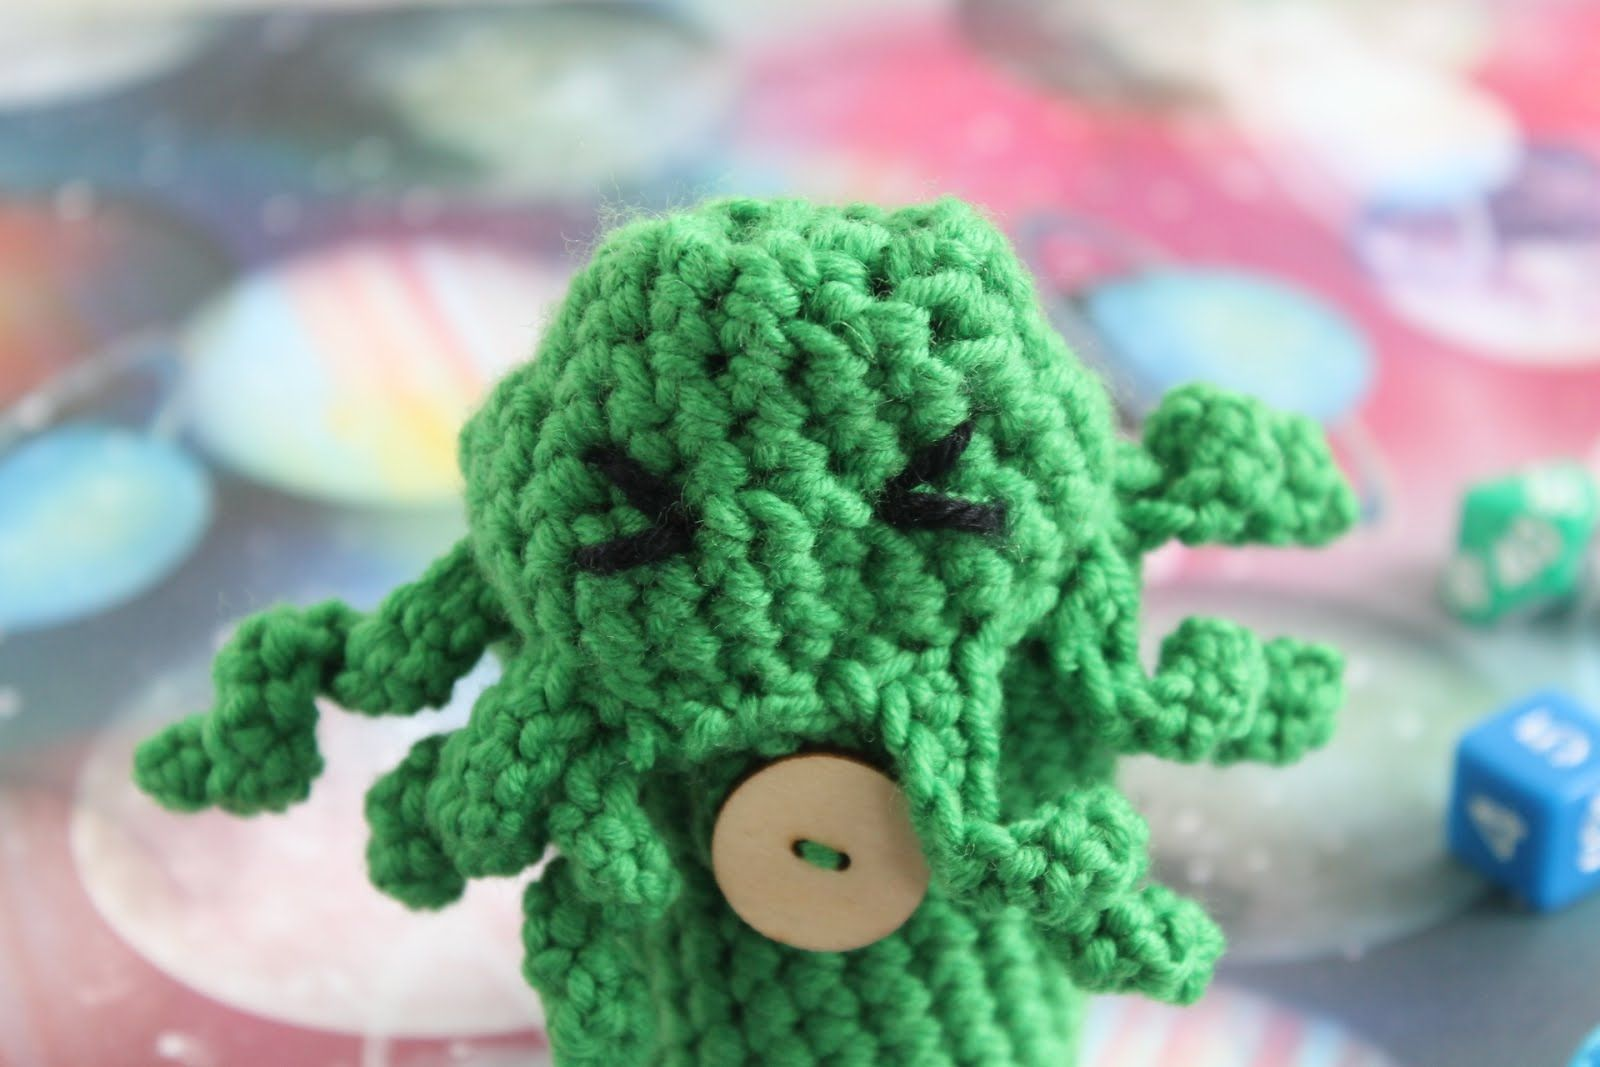 Free cthulhu dice bag crochet pattern cthulhu crochet and patterns bankloansurffo Choice Image